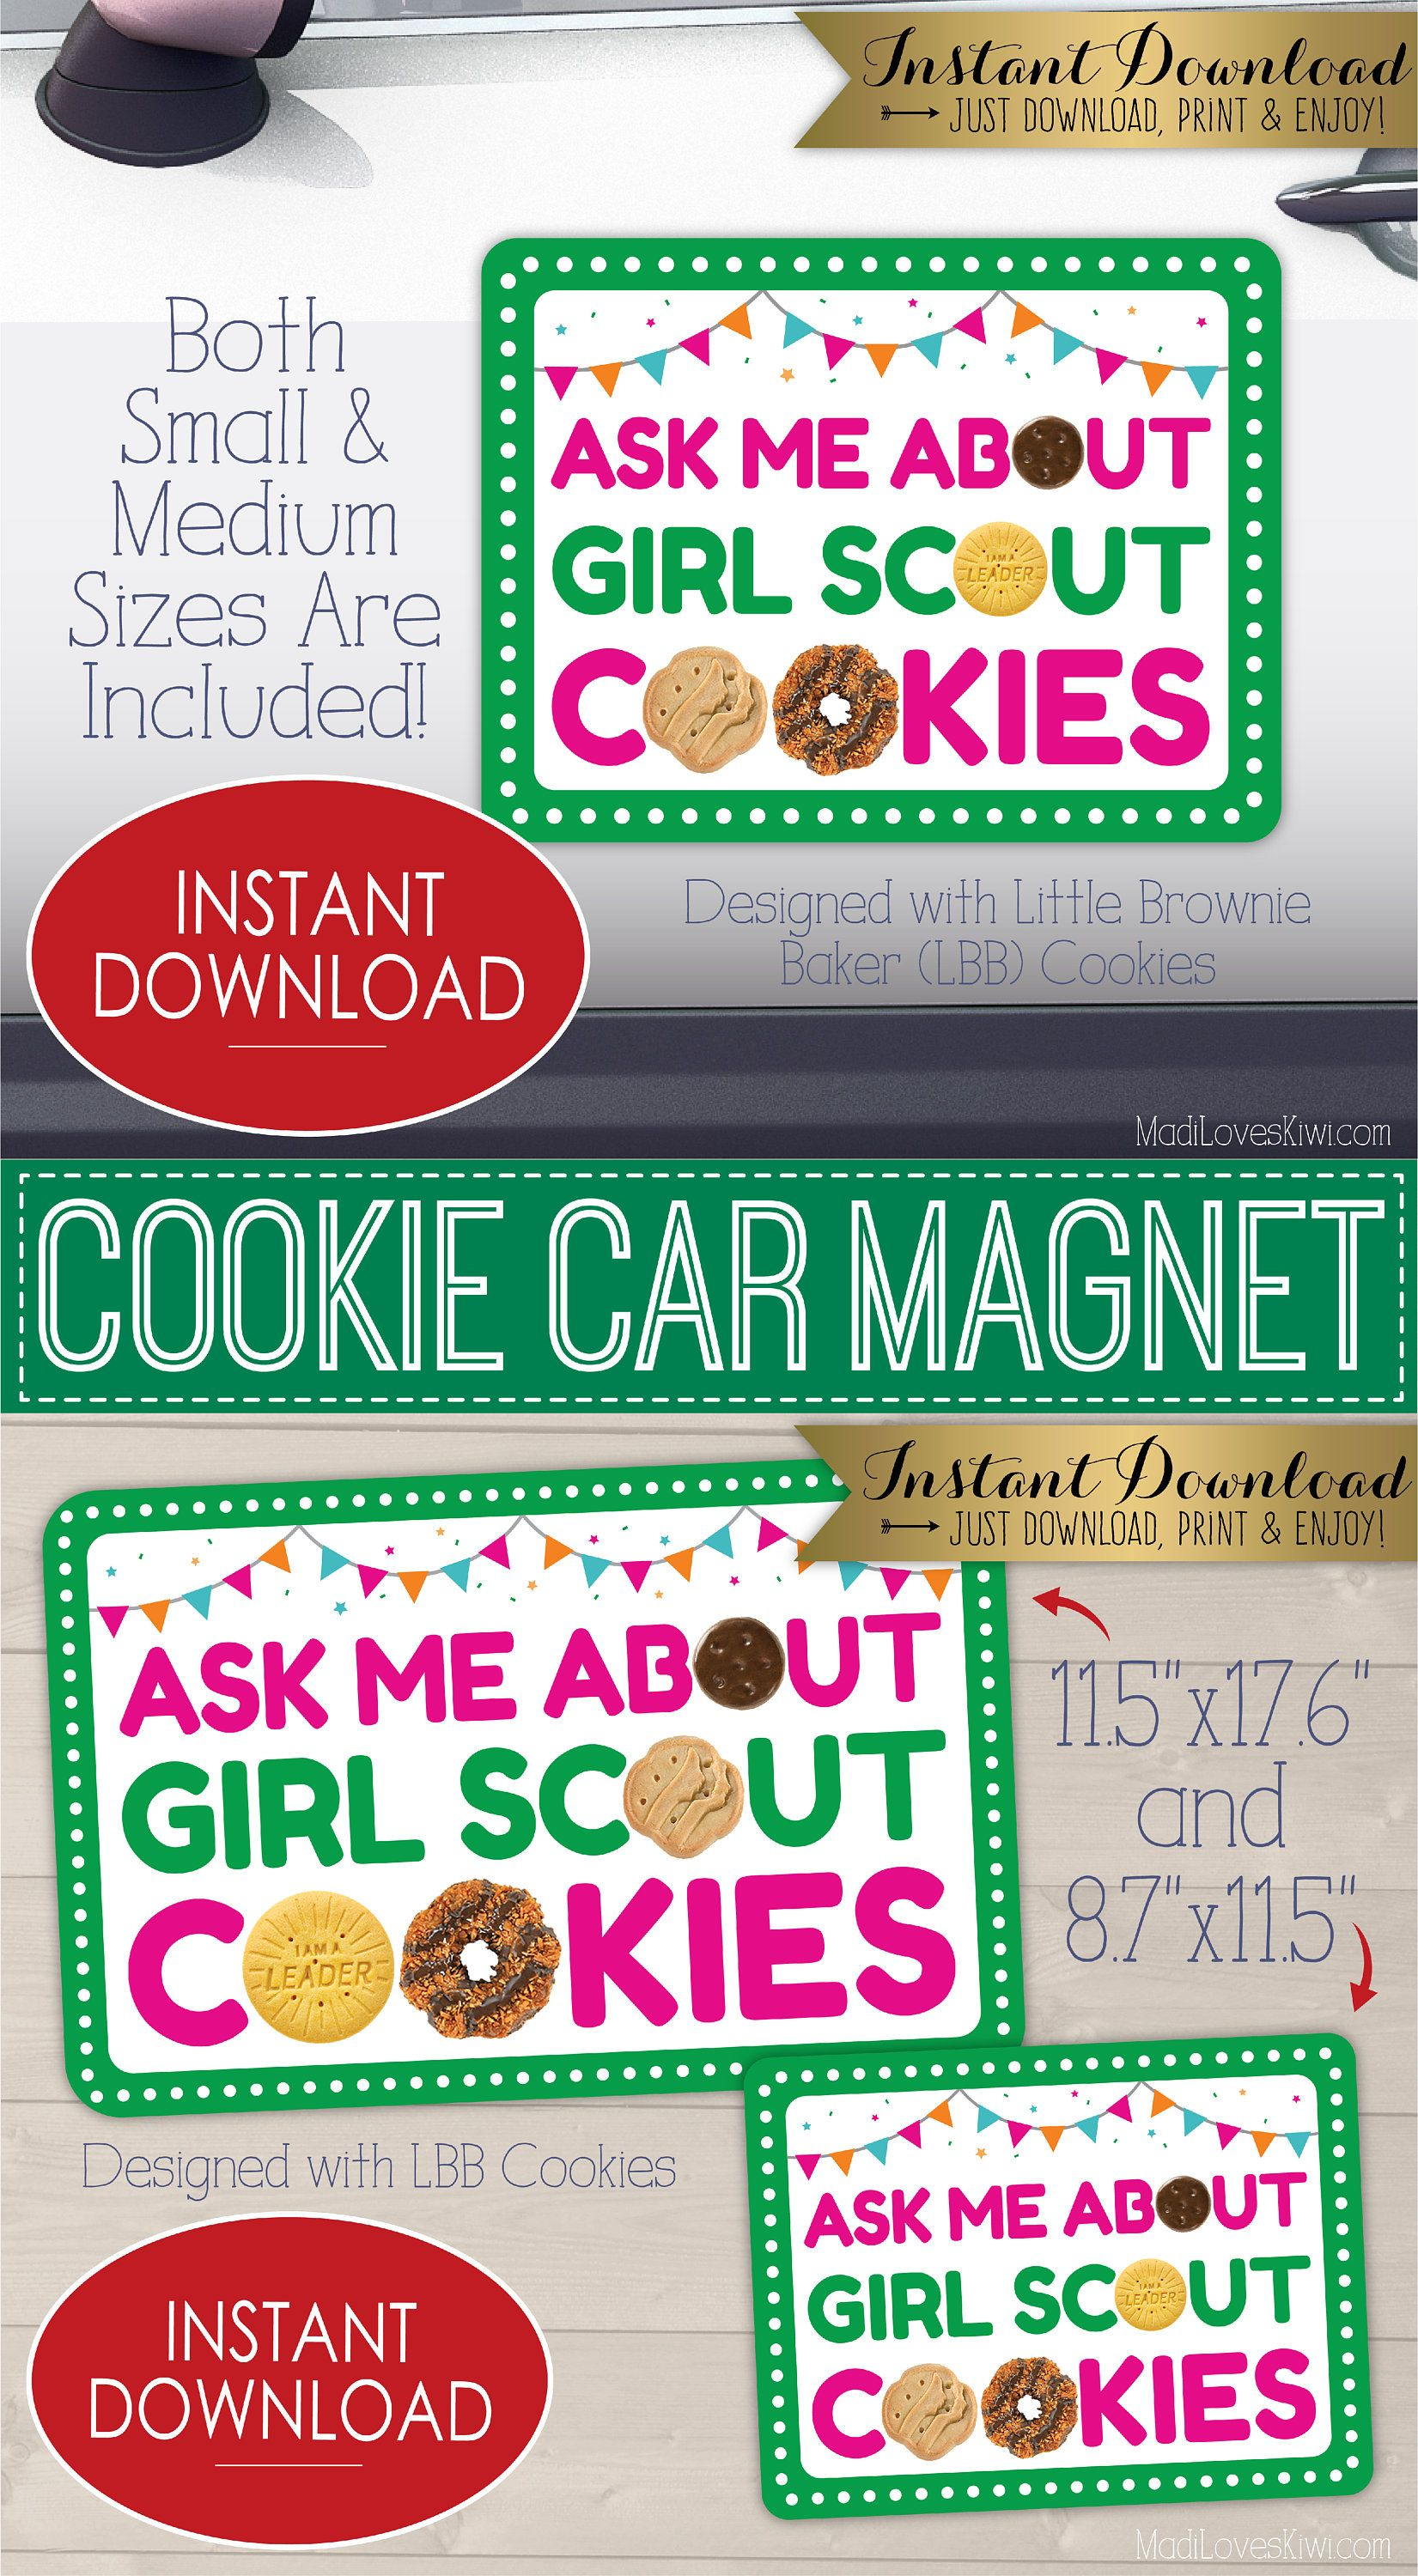 Ask Me About Girl Scout Cookies Car Magnet Van Decal Etsy Girl Scout Cookies Booth Girl Scout Cookie Sales Girl Scout Cookies [ 3000 x 1651 Pixel ]